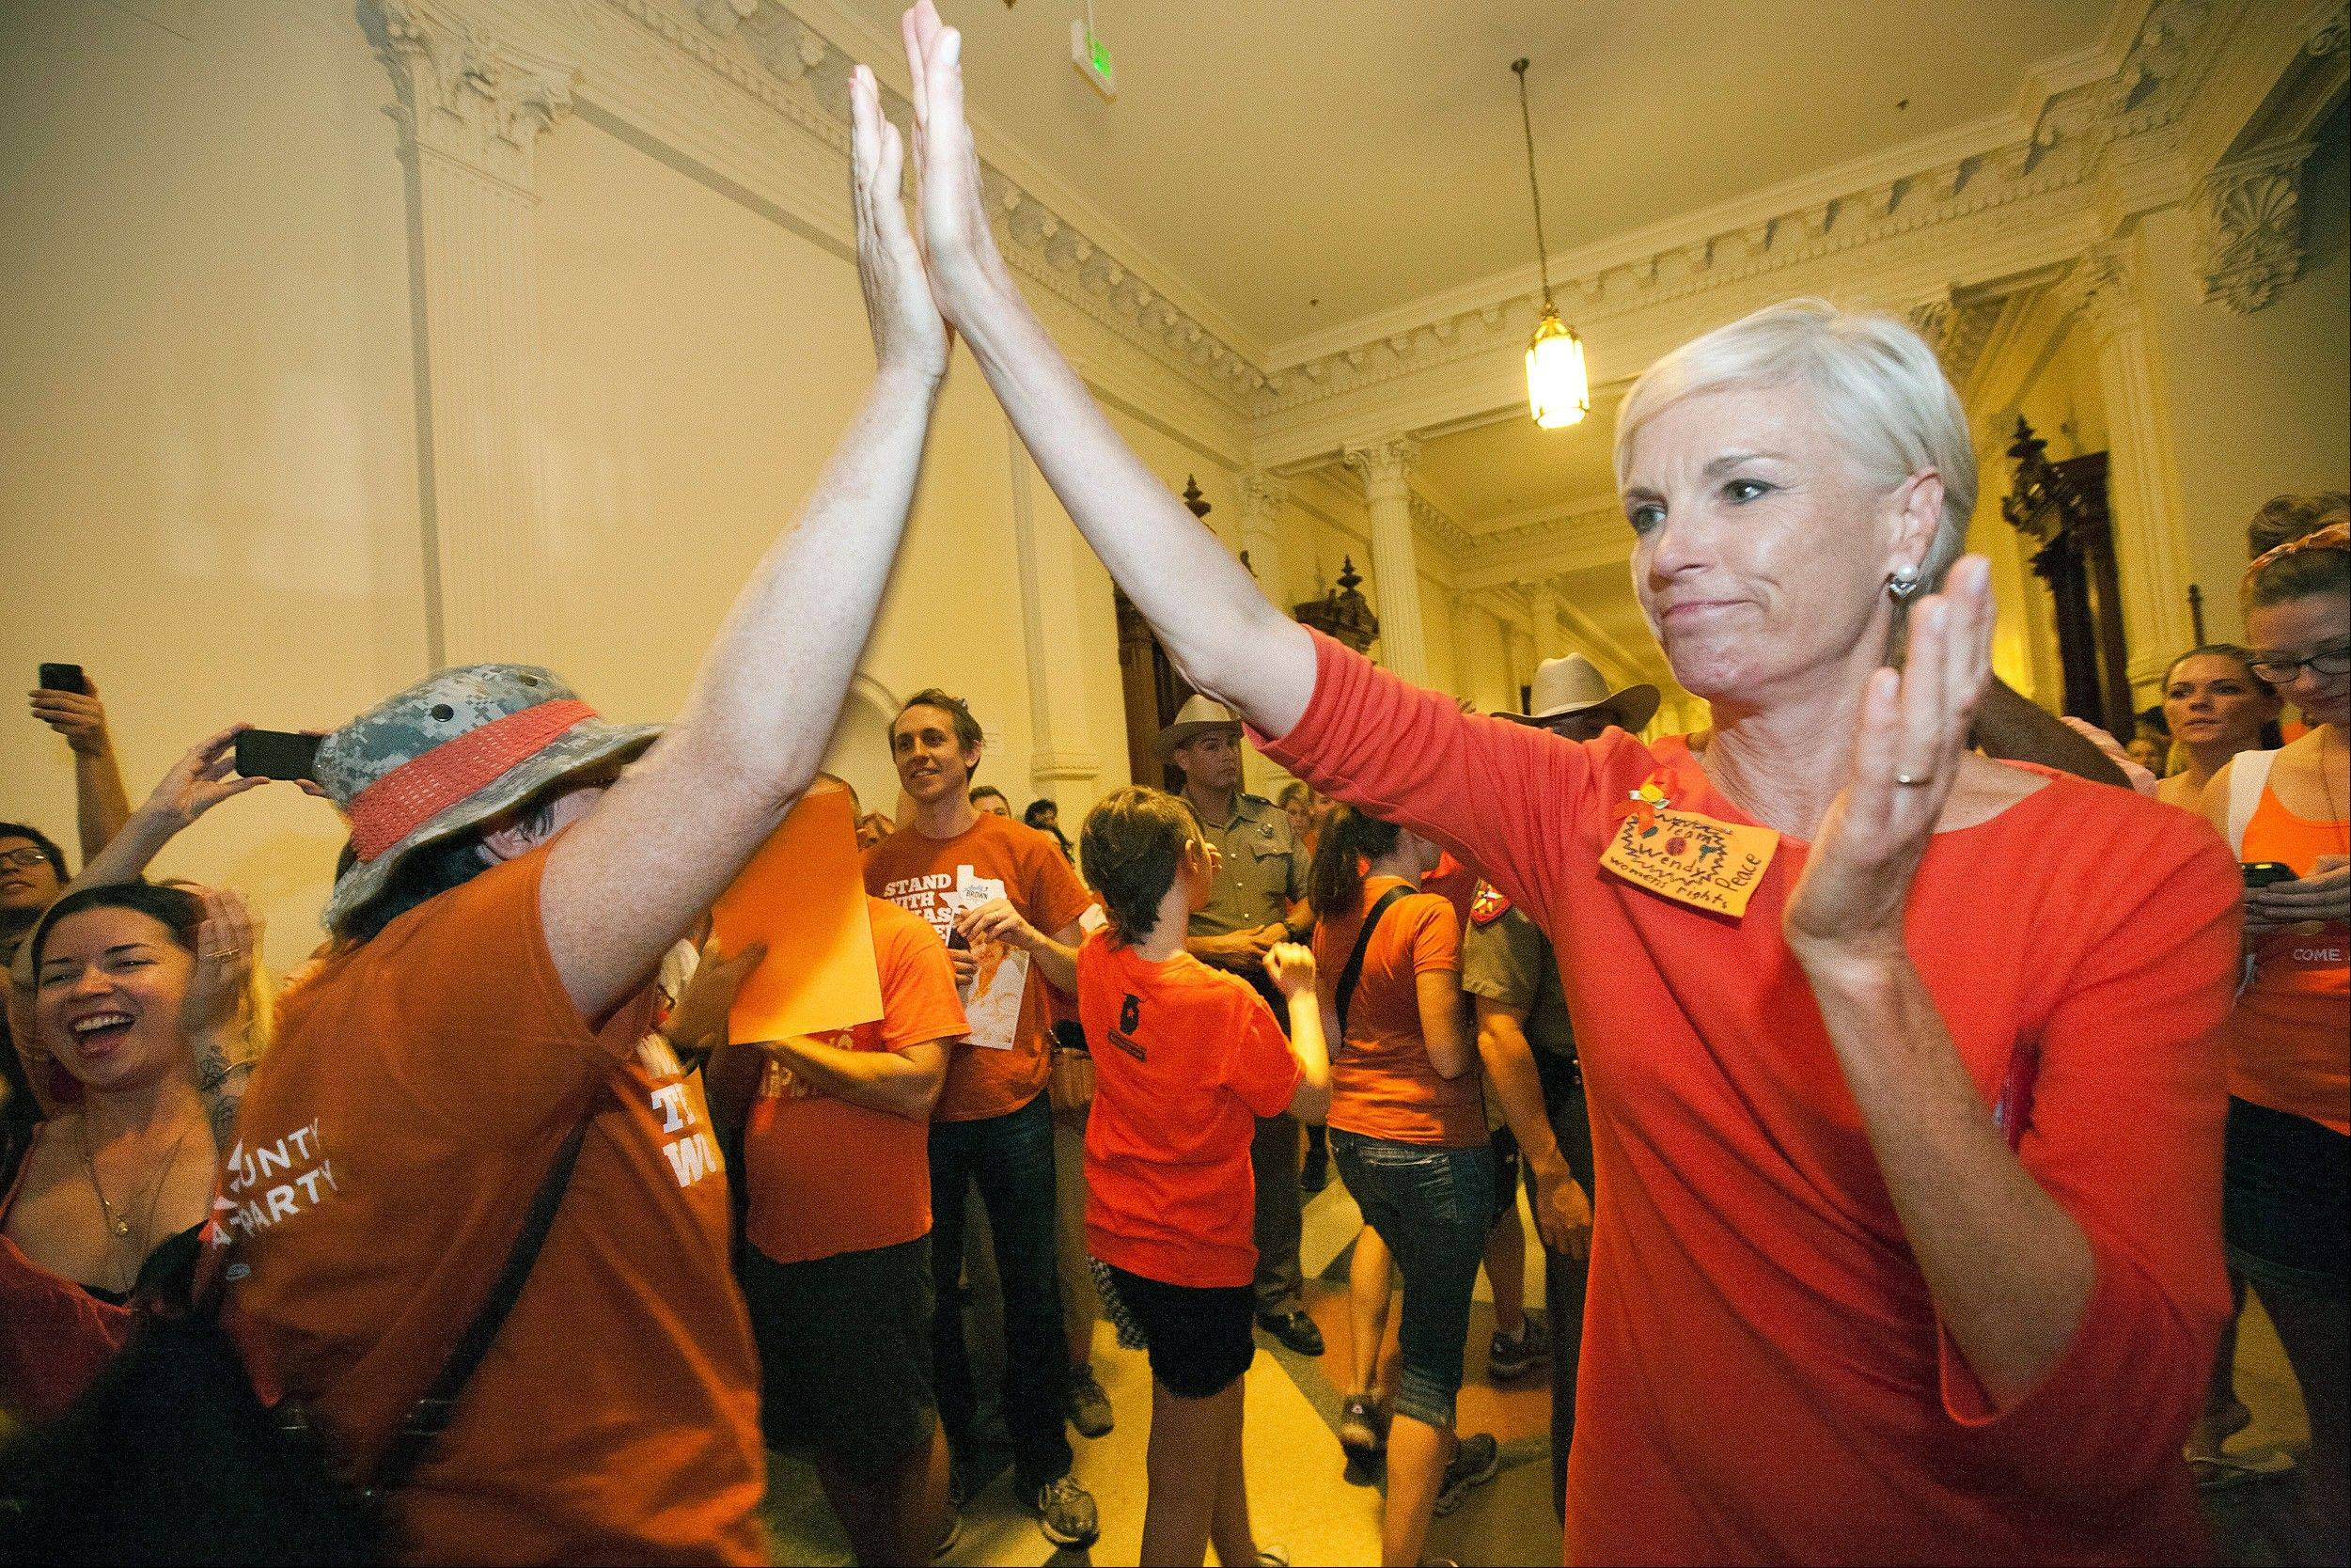 Cecile Richards, daughter of former Texas Gov. Ann Richards and President of Planned Parenthood Action Fund, greets abortion rights advocates Friday as they leave the State Capitol rotunda in Austin, Texas. Democrats plan to use the GOP decision to pass possibly the strictest anti-abortion laws in the country during the next election.